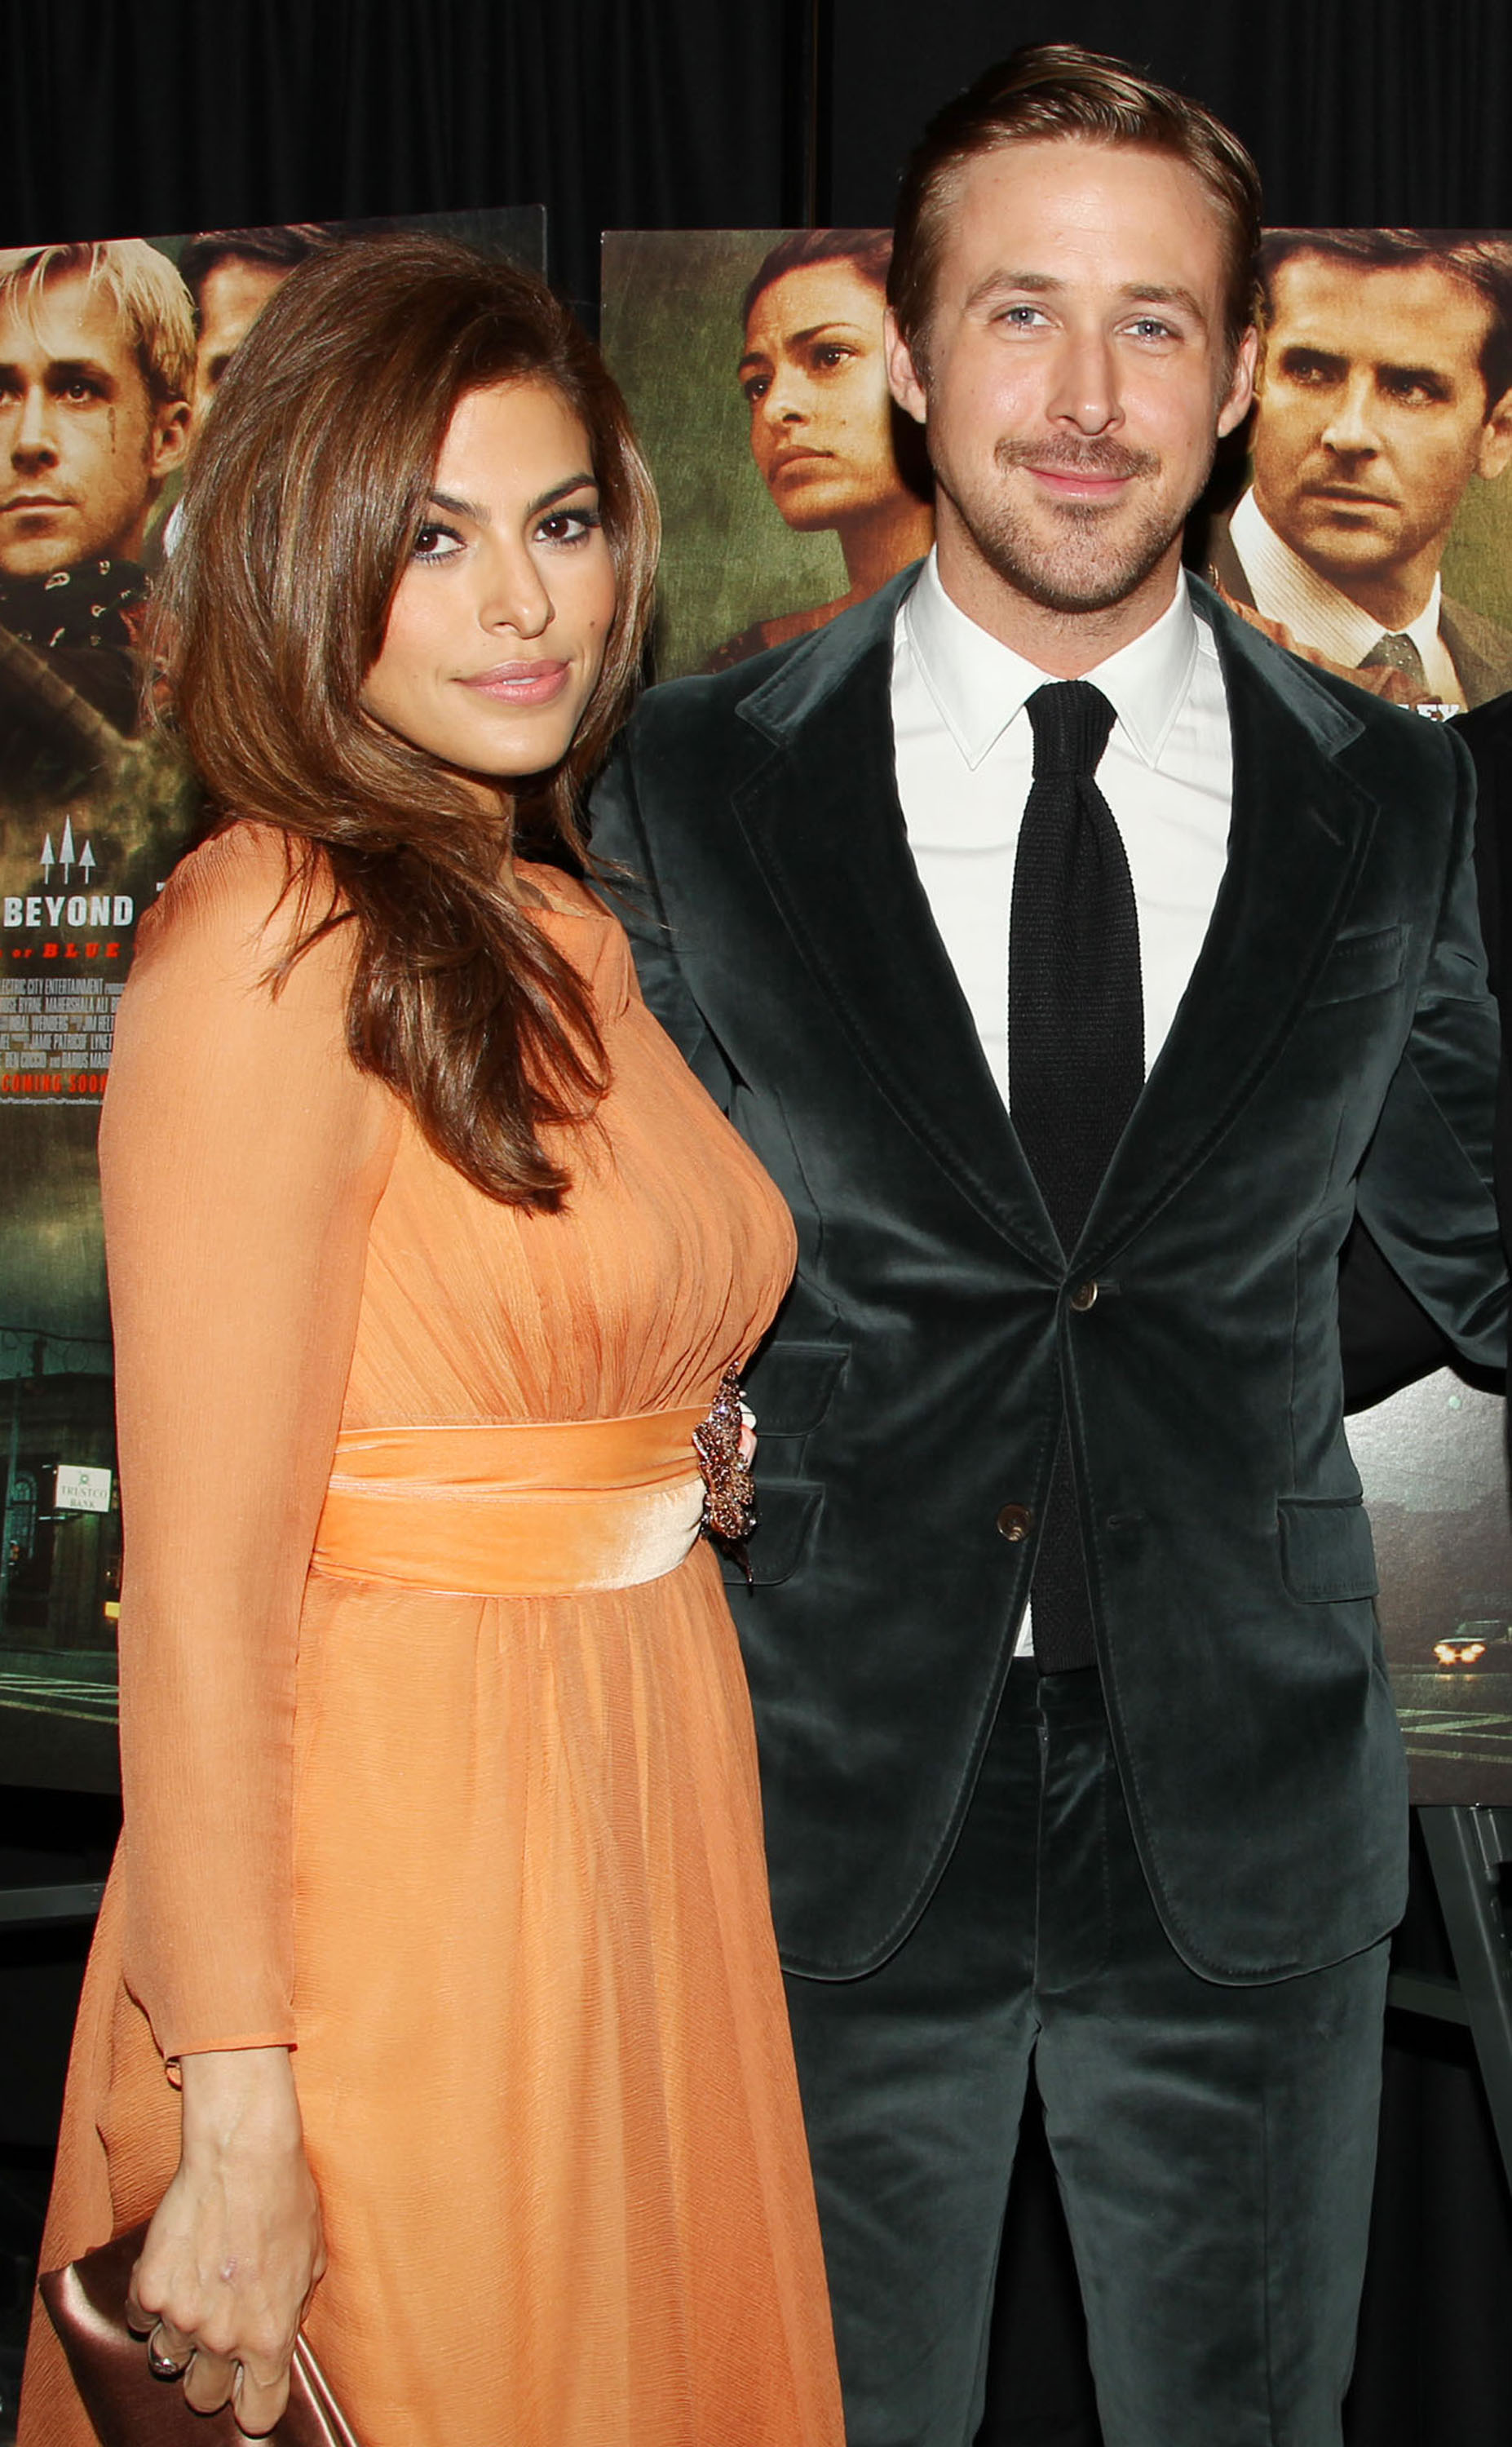 Eva Mendes Gets Real About Parenting With Her Beau Ryan Gosling: 'It's So Fun and Beautiful'